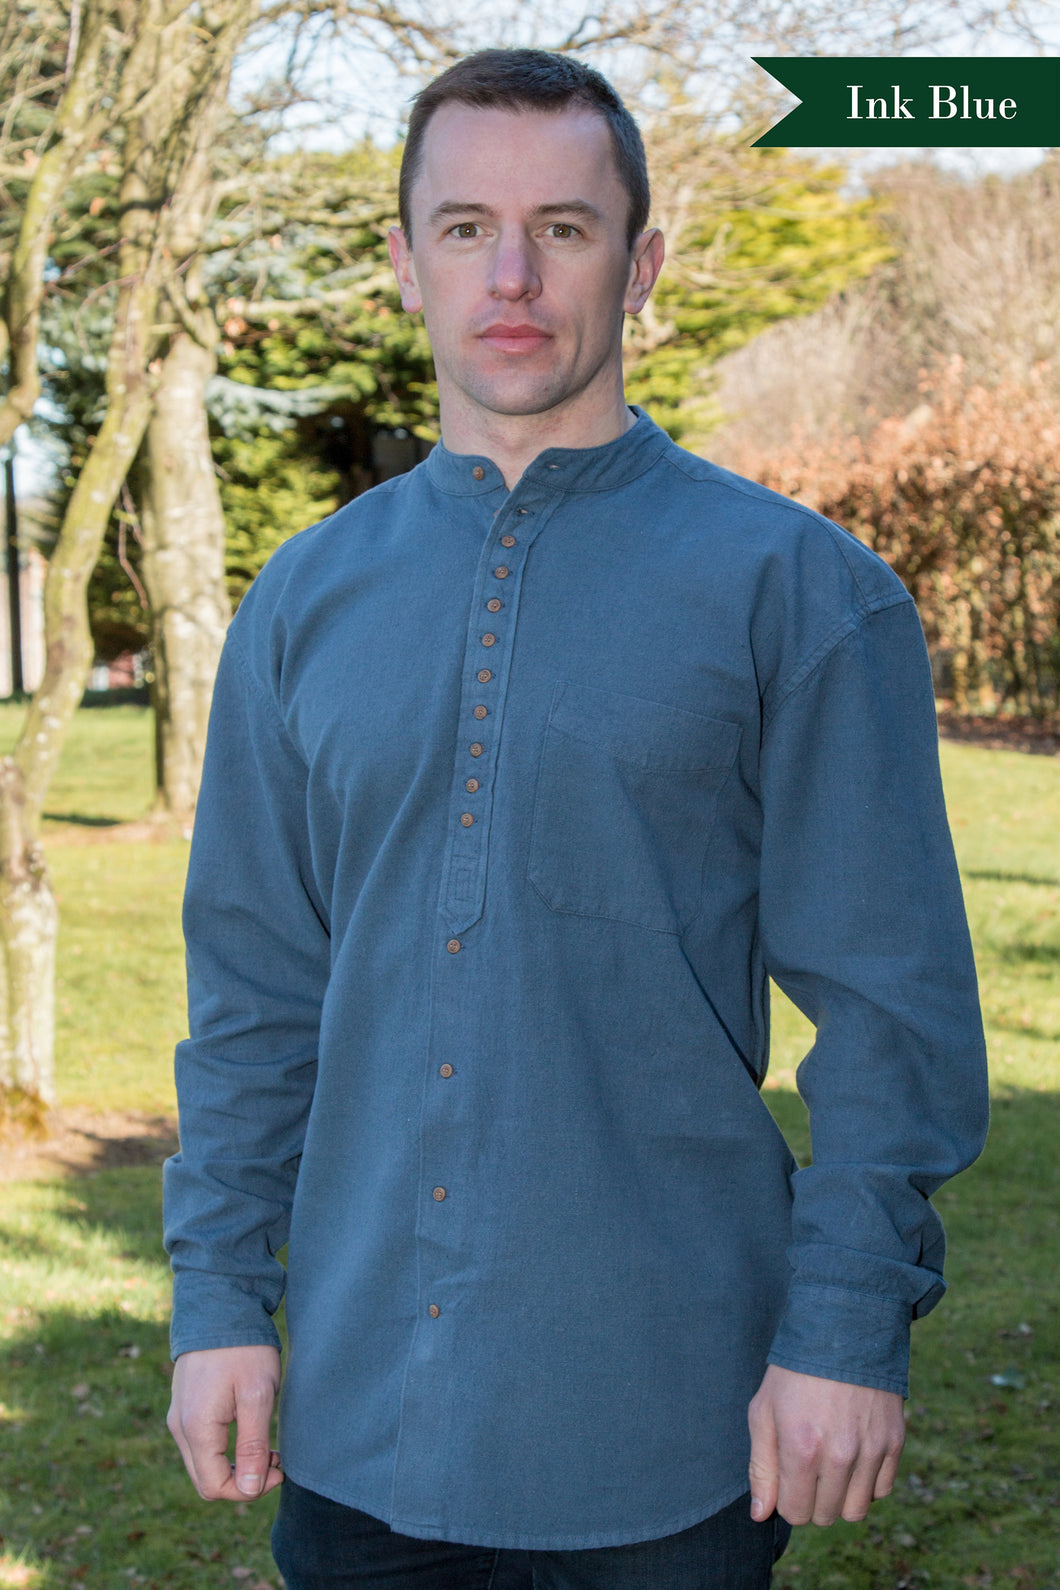 Irish Traditional Grandfather Shirt - Ink Blue